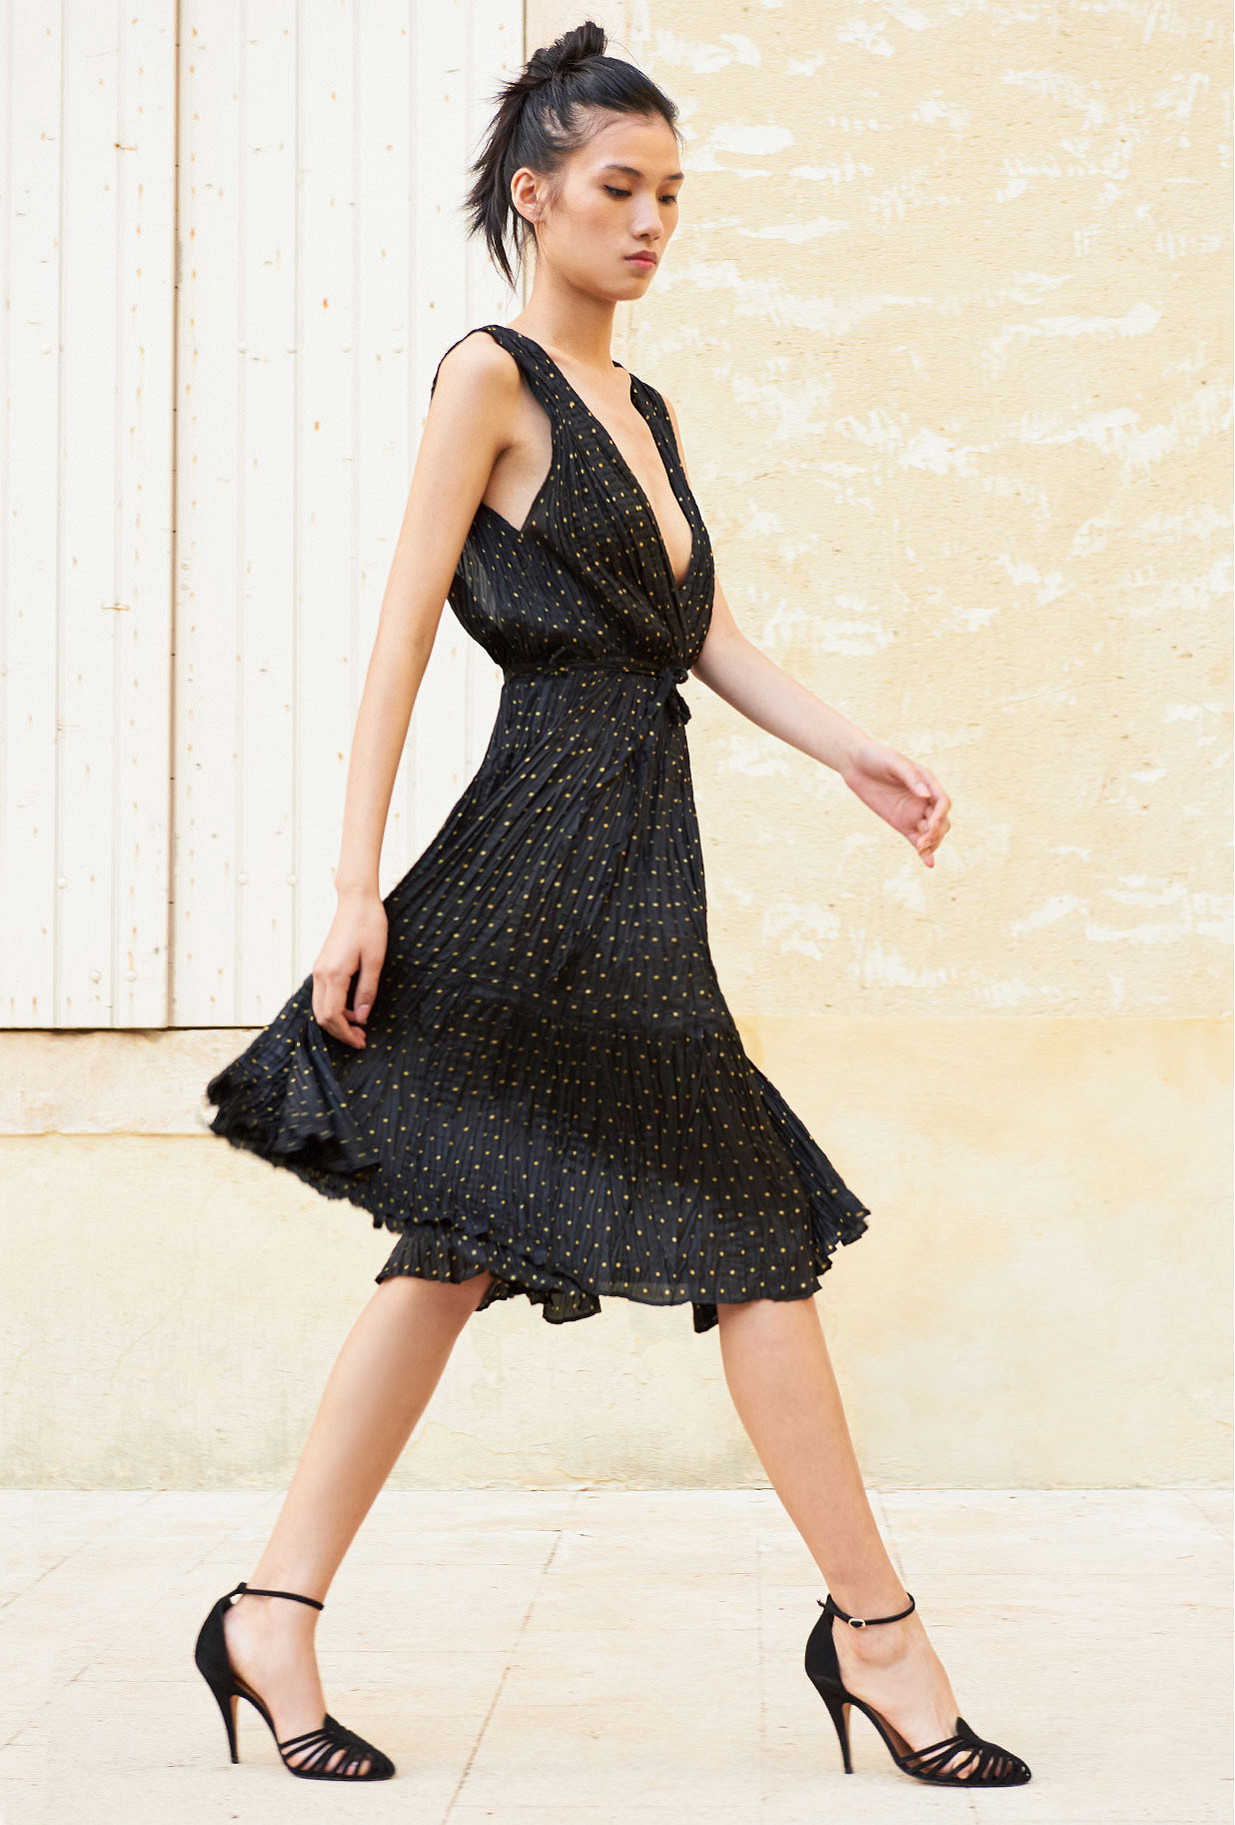 Paris clothes store Dress  Balsan french designer fashion Paris